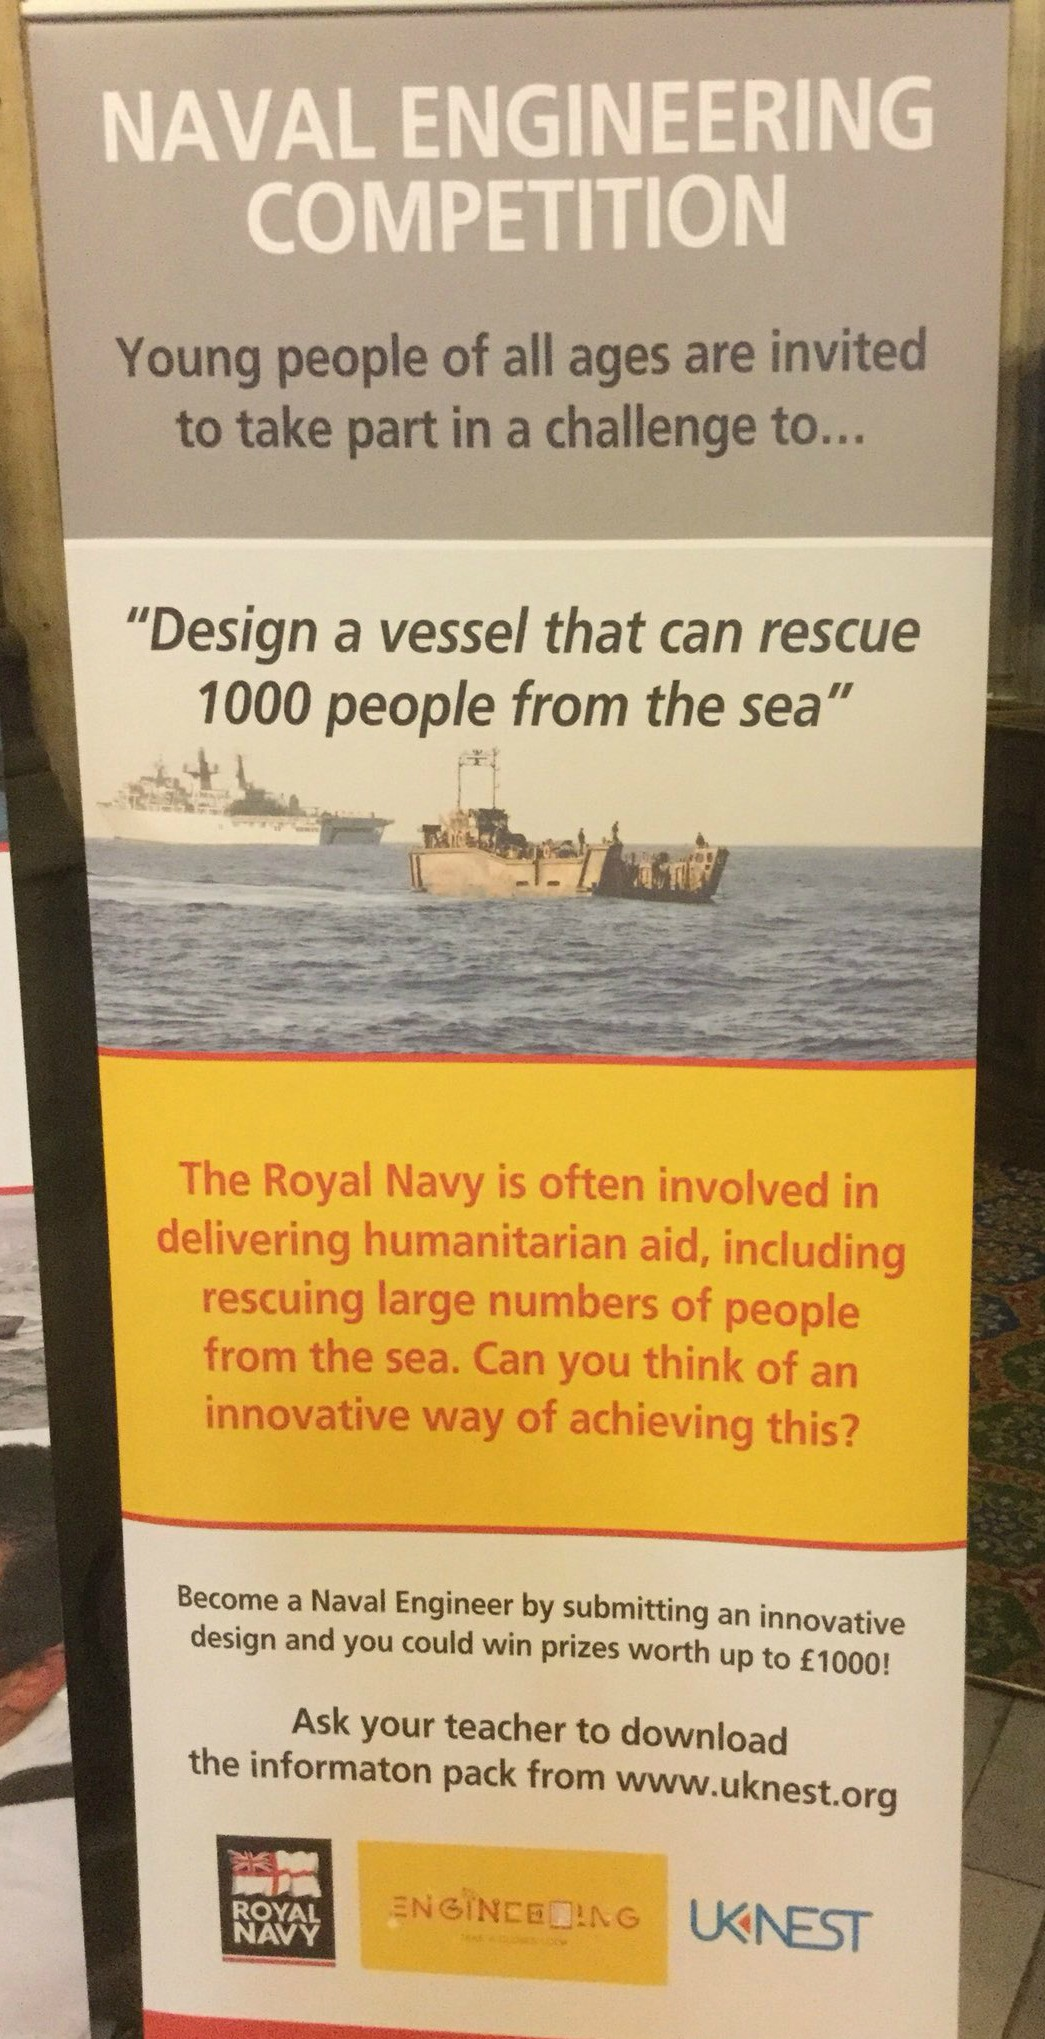 Naval Engineering competition